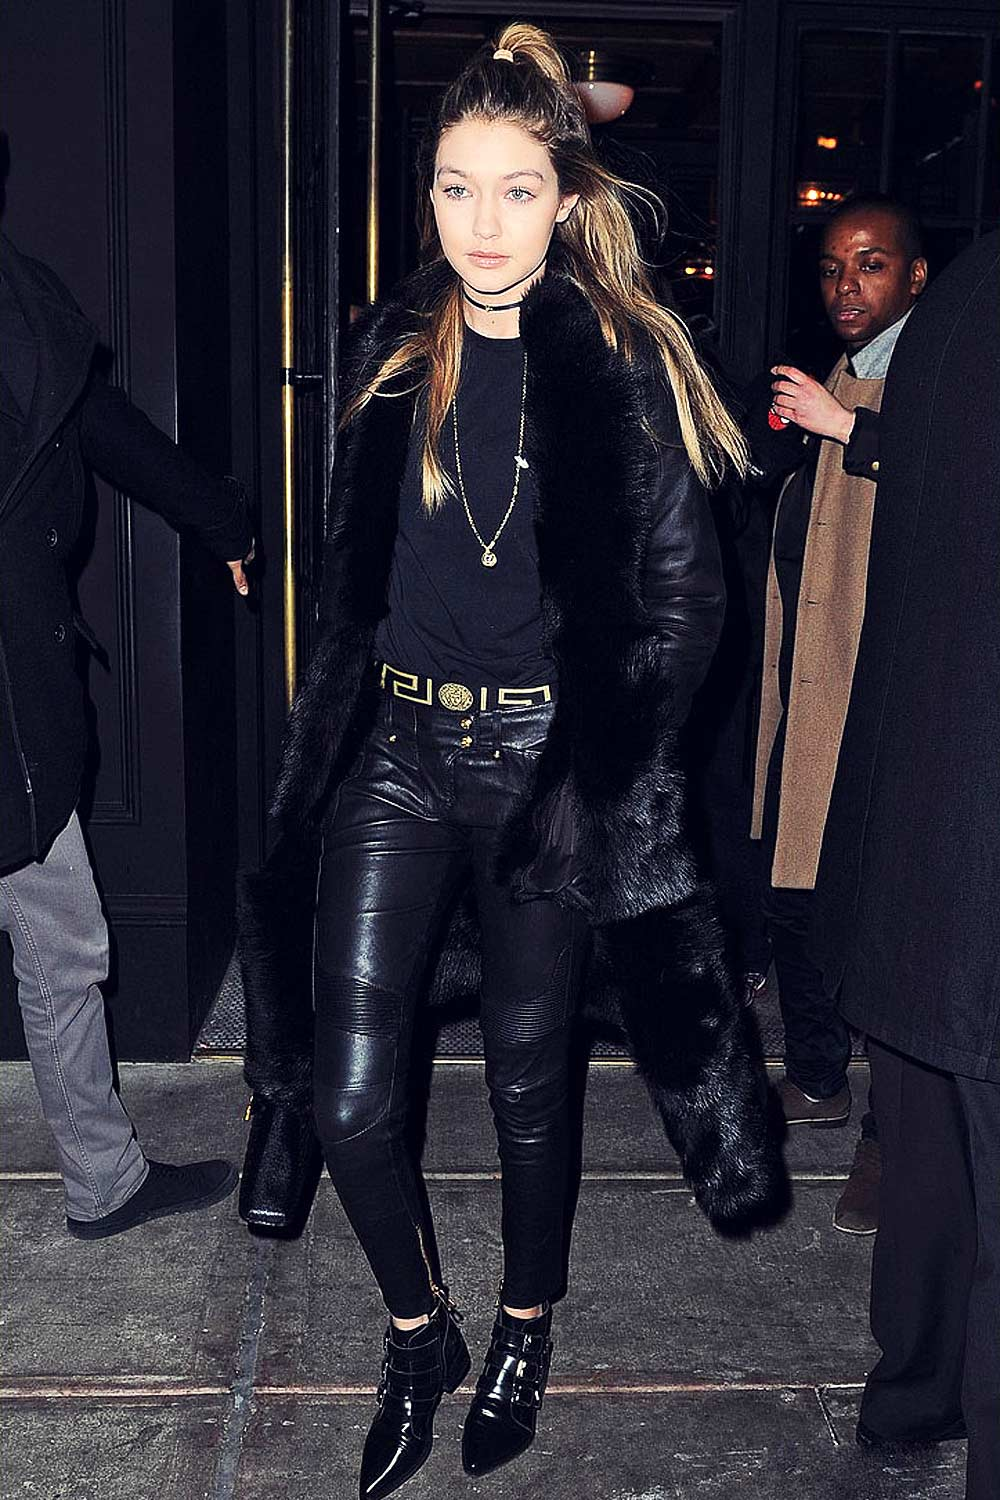 Gigi Hadid step out of an apartment building